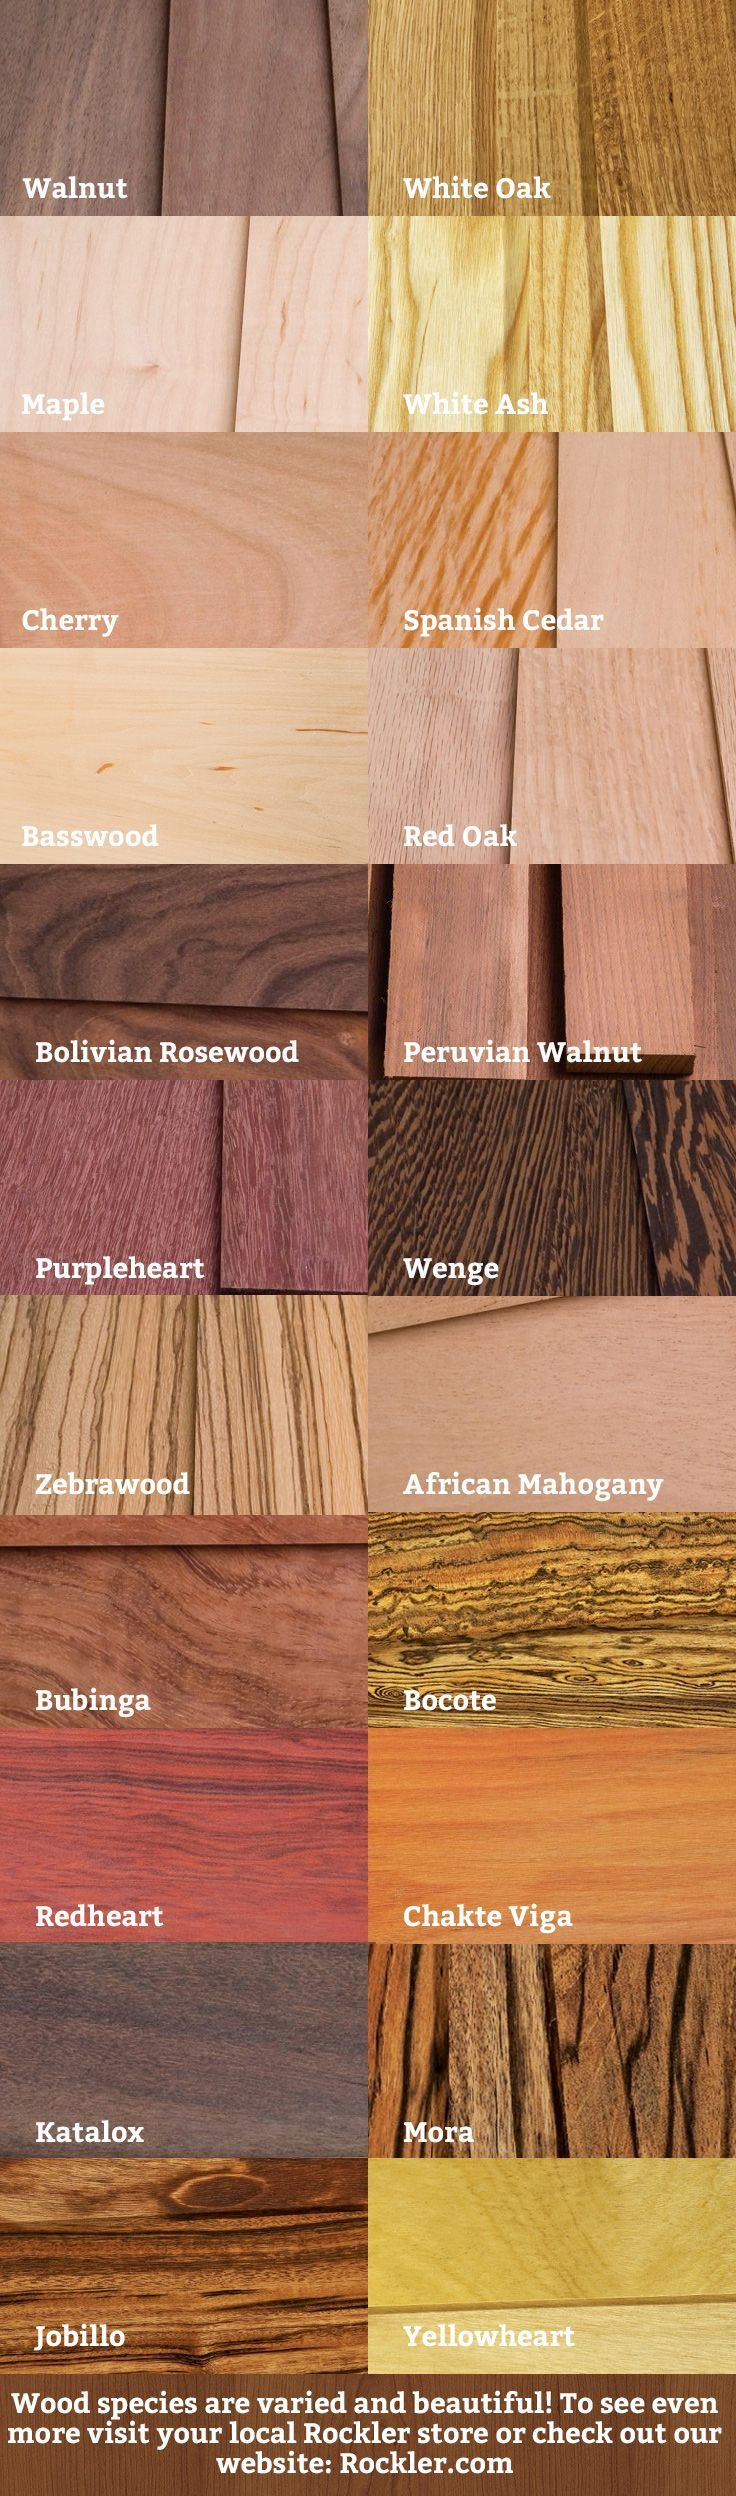 a visual guide to wood species to see more visit a local rockler store or